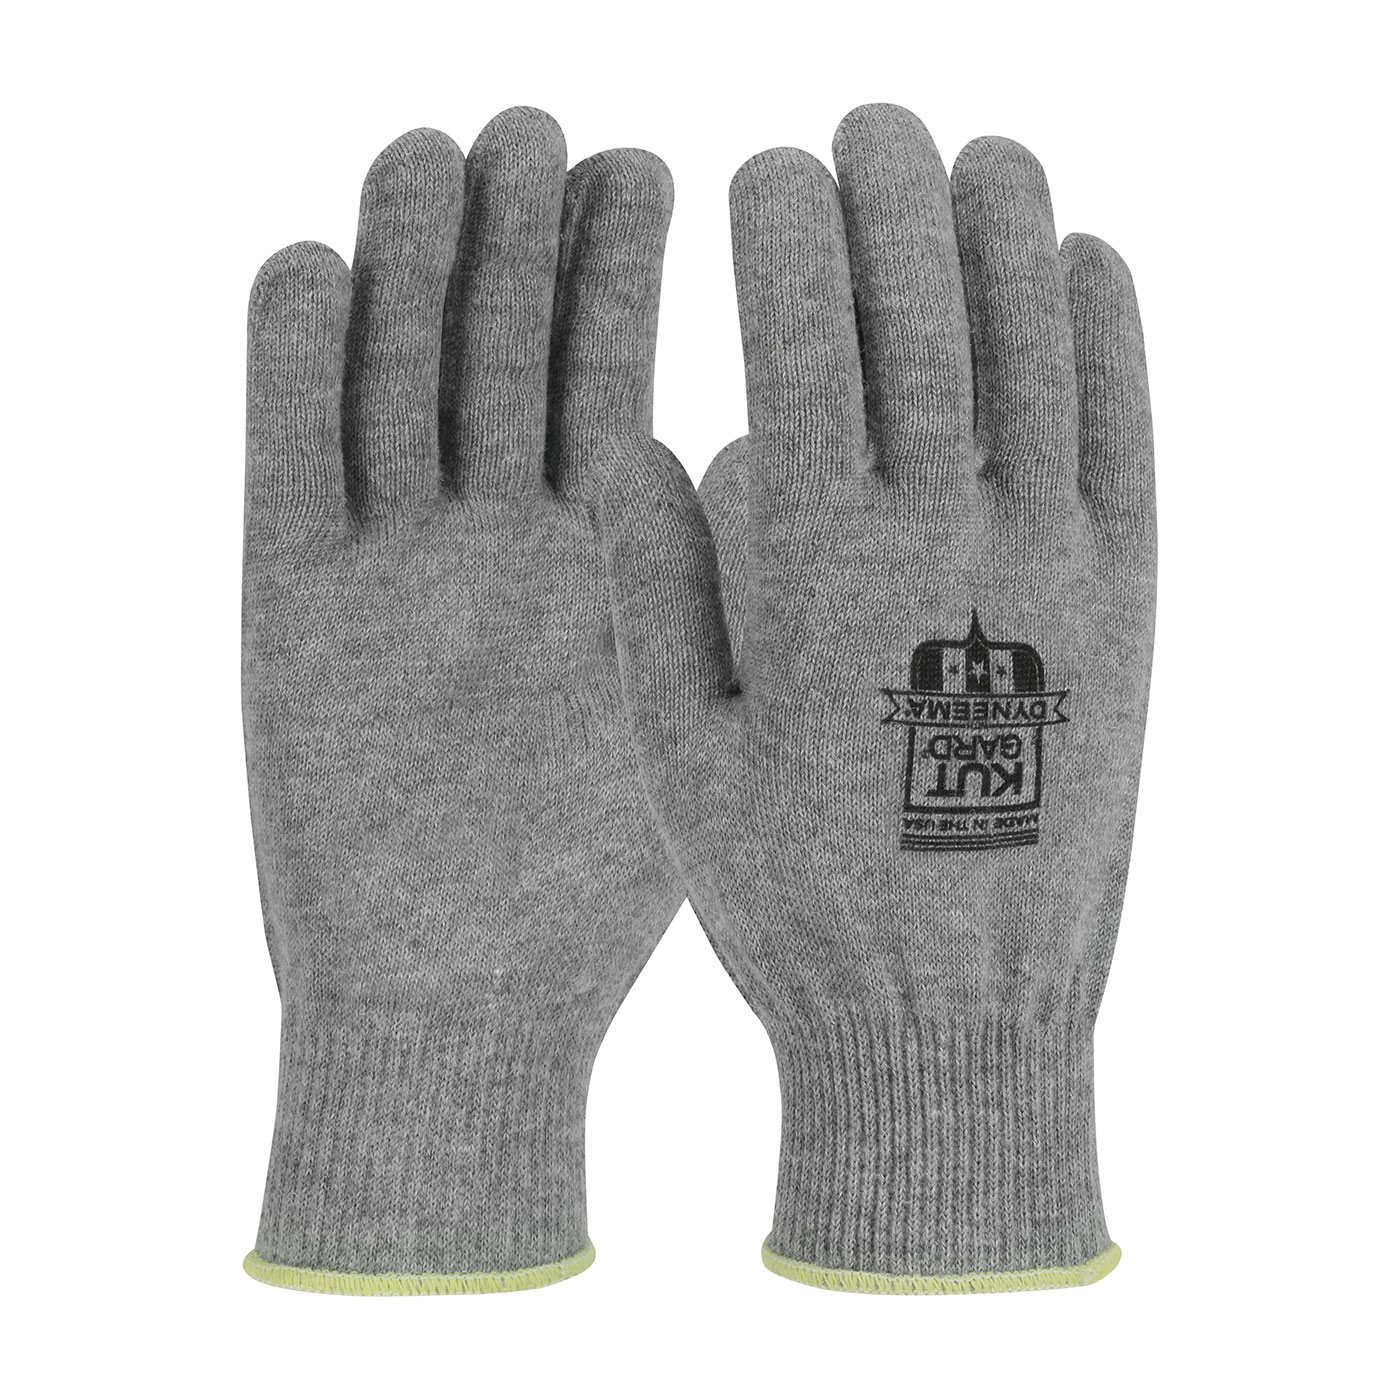 #17-DA720 PIP® ACP Gray Dyneema® 13-Gauge Knitted Gloves